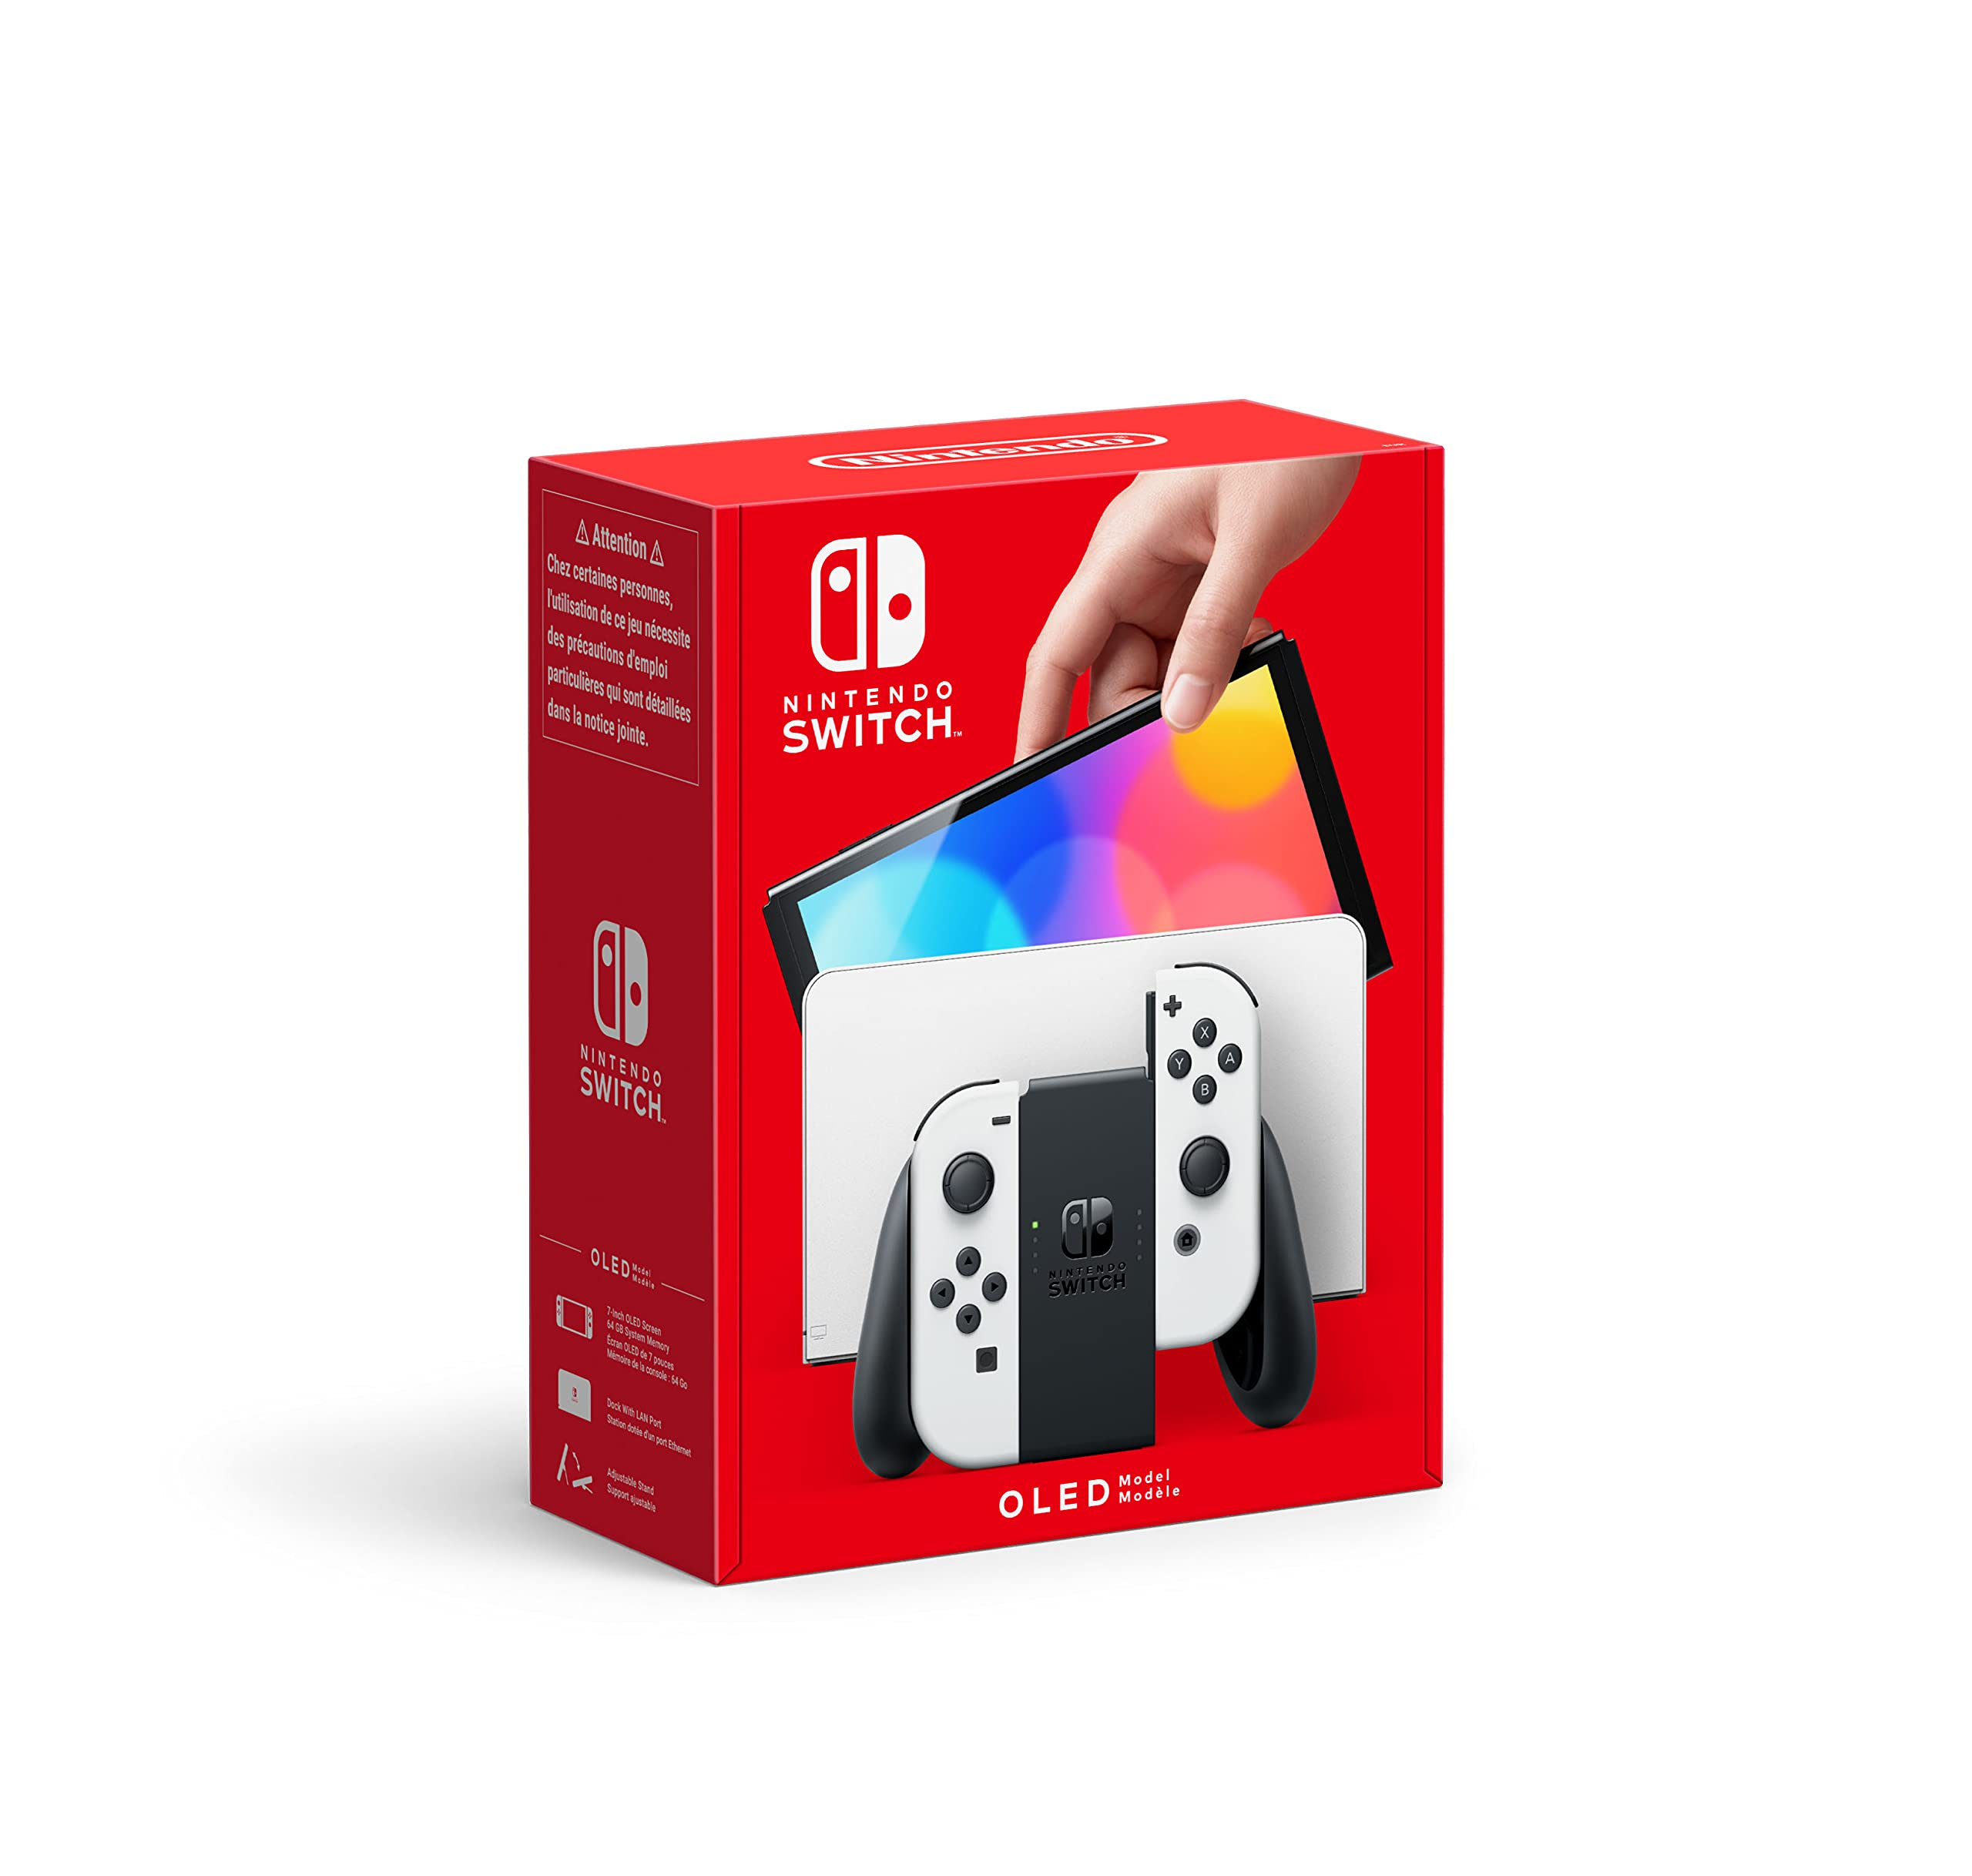 Nintendo Switch OLED Weiss - Switch Console